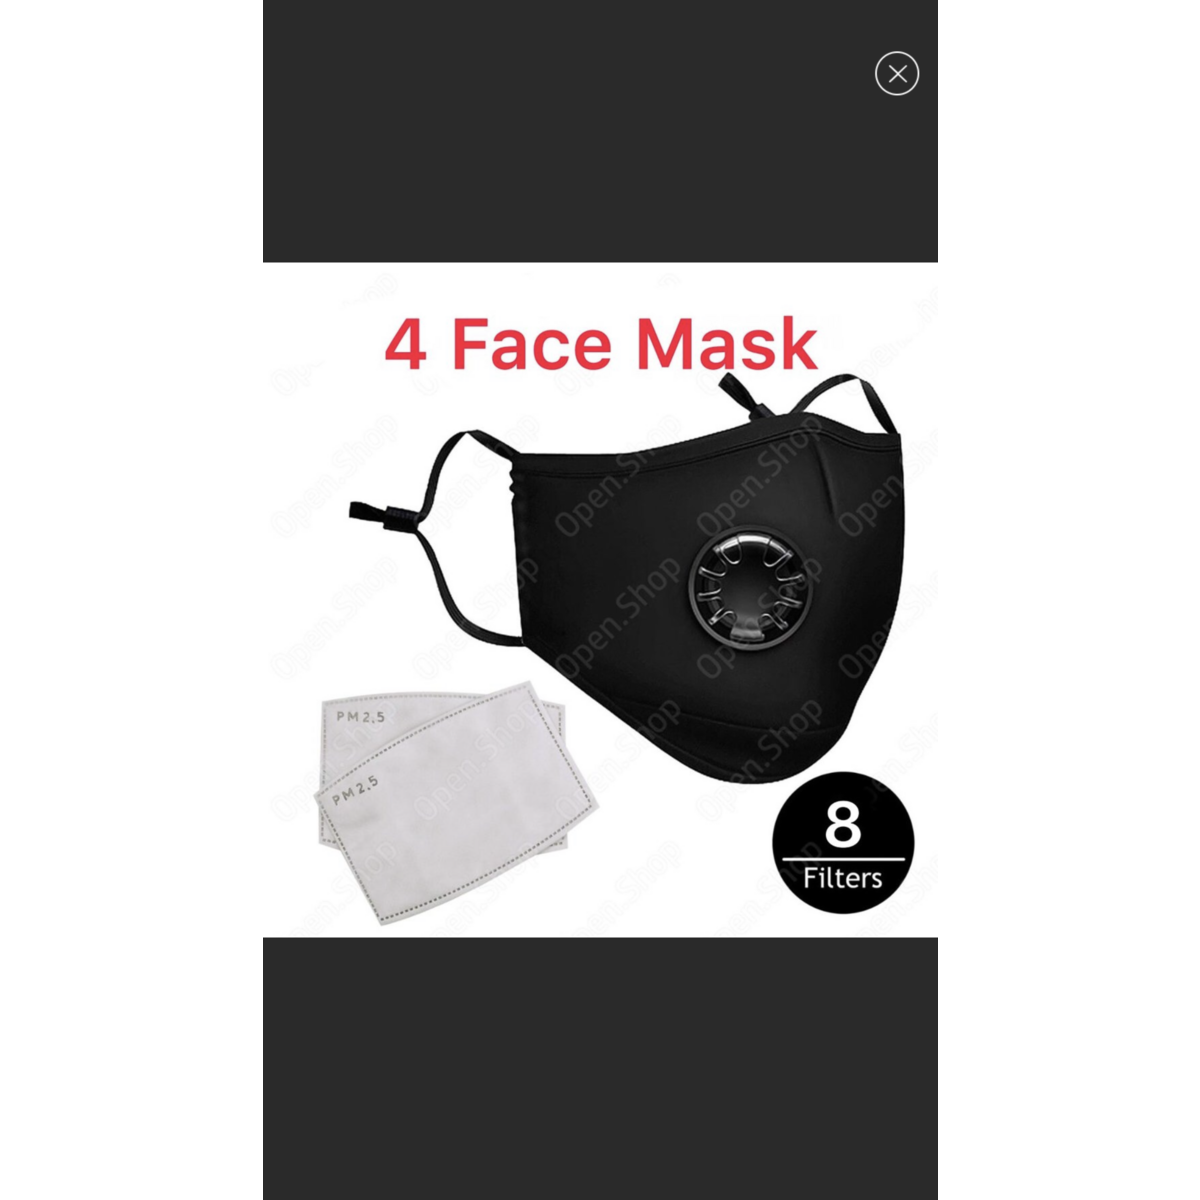 4 Washable Face Masks with 8 free pm2.5 filters